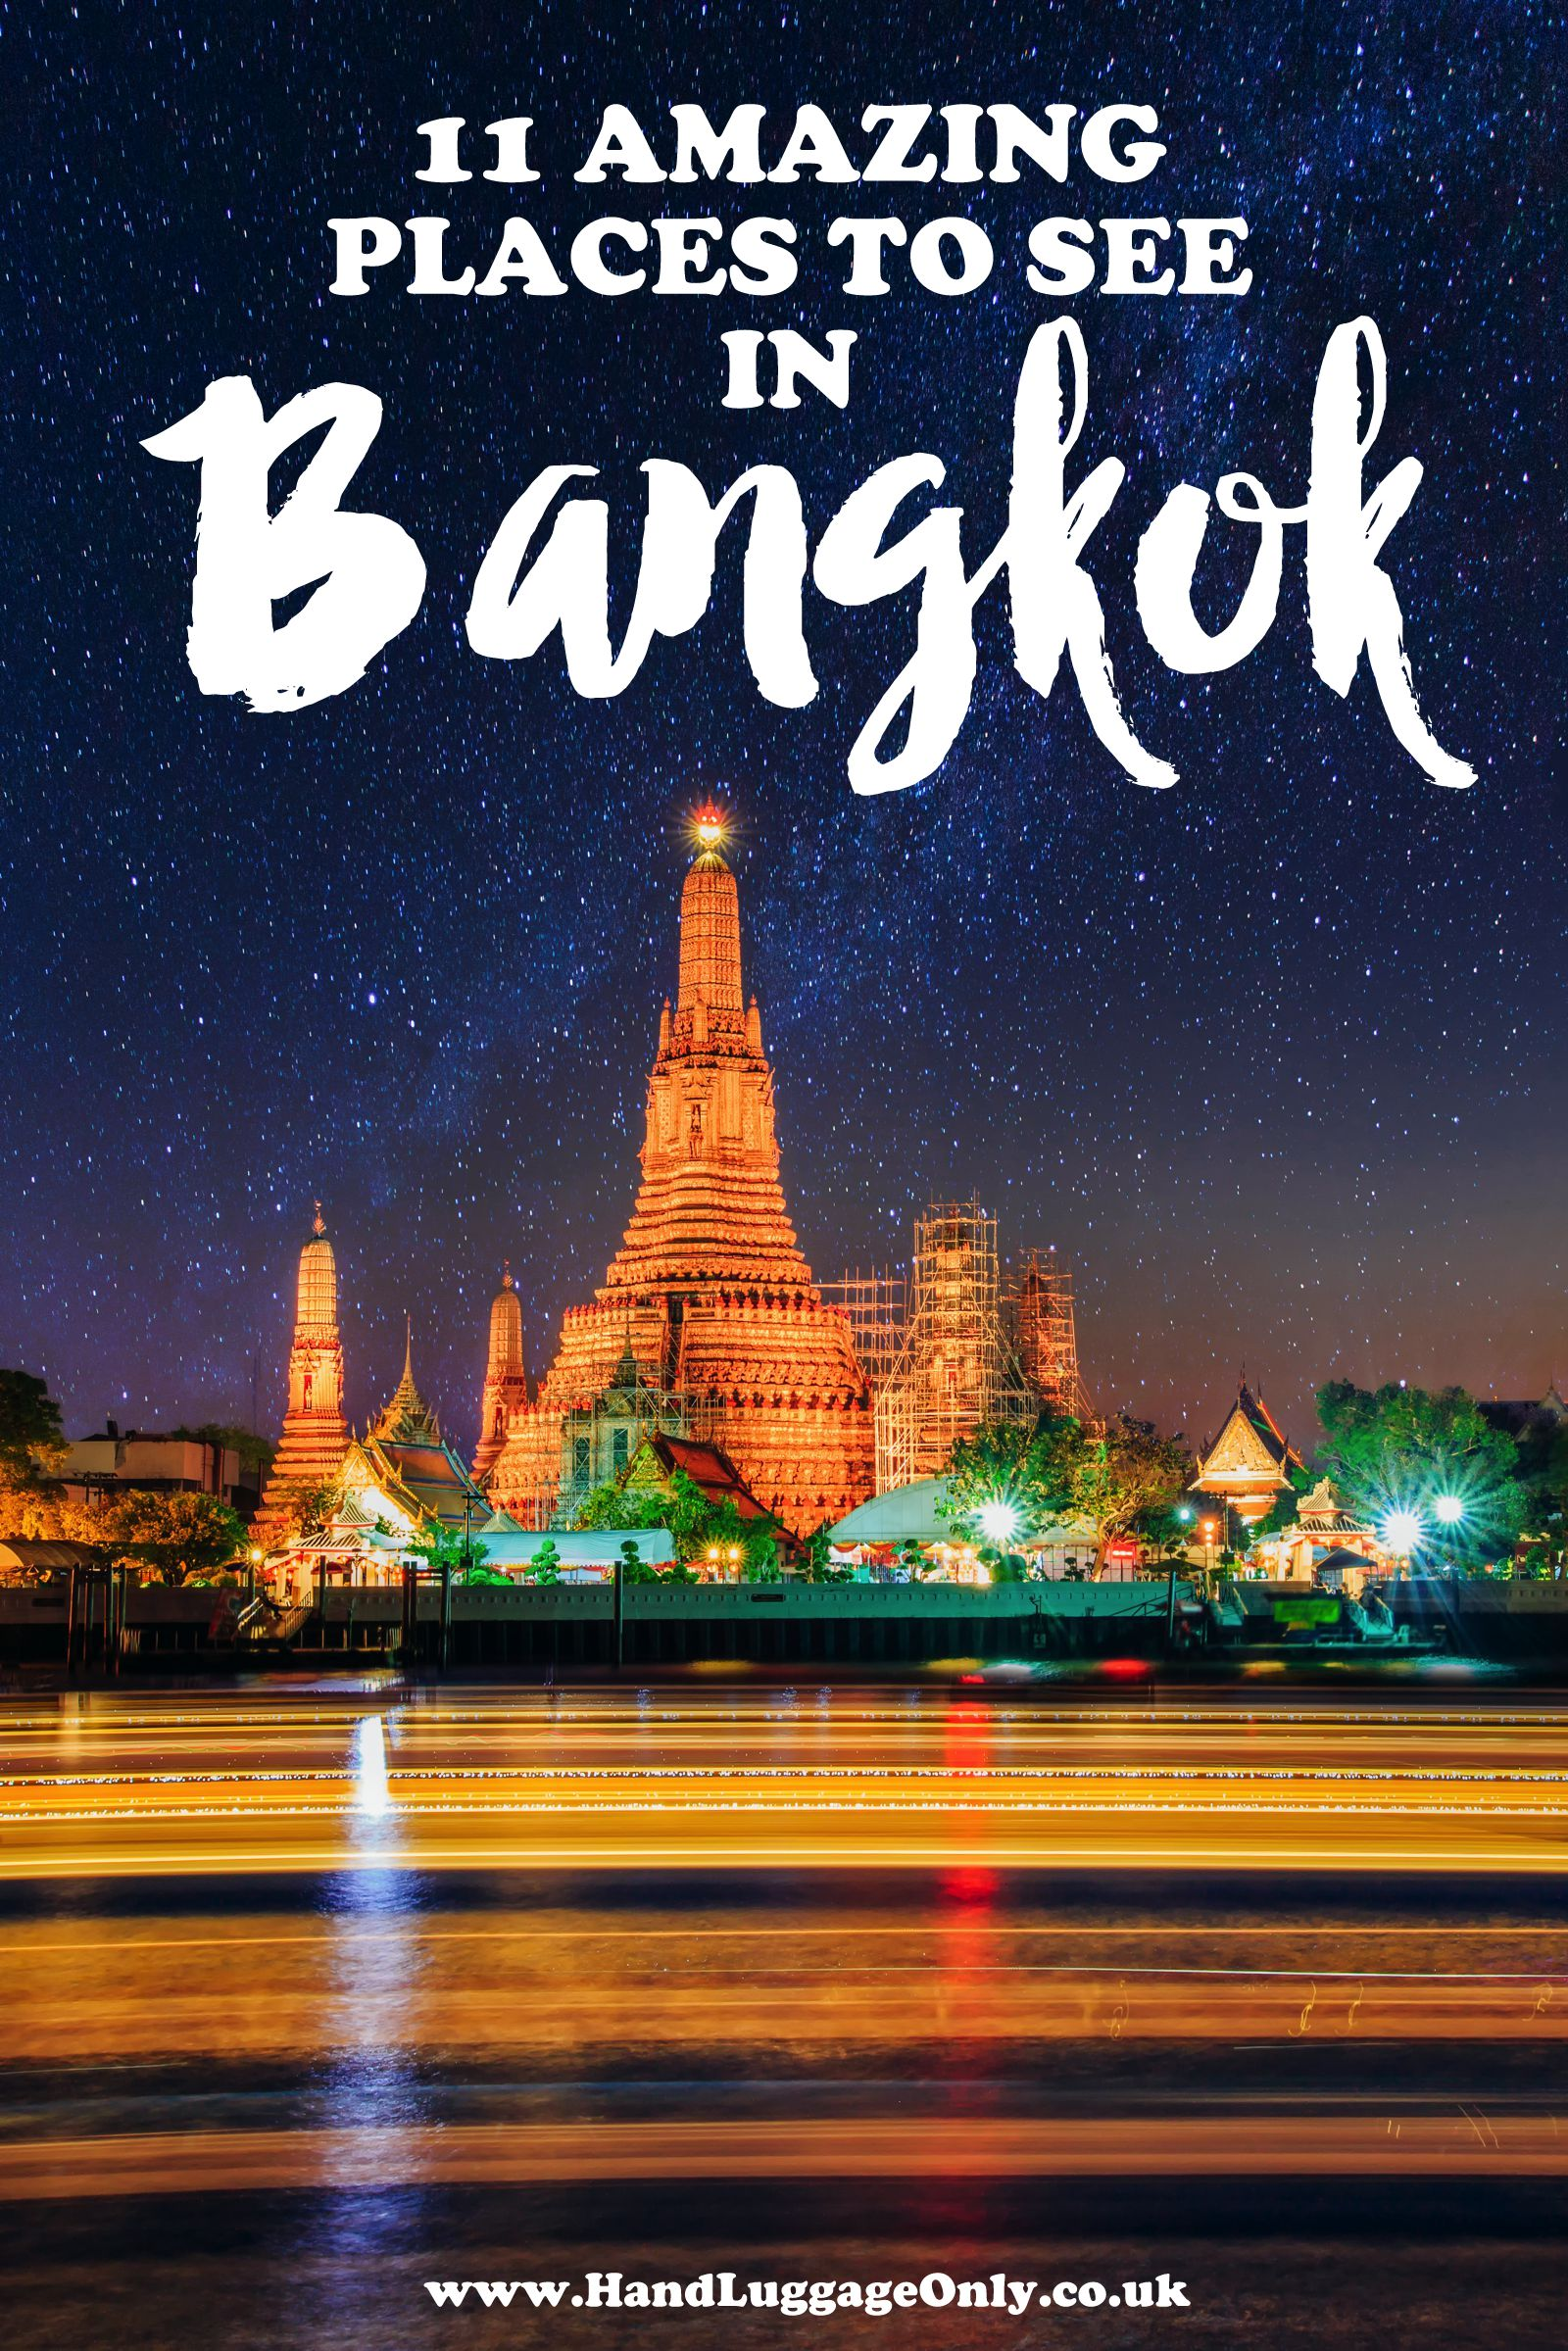 11 Amazing Places And Things You Need To See In Bangkok, Thailand (1)